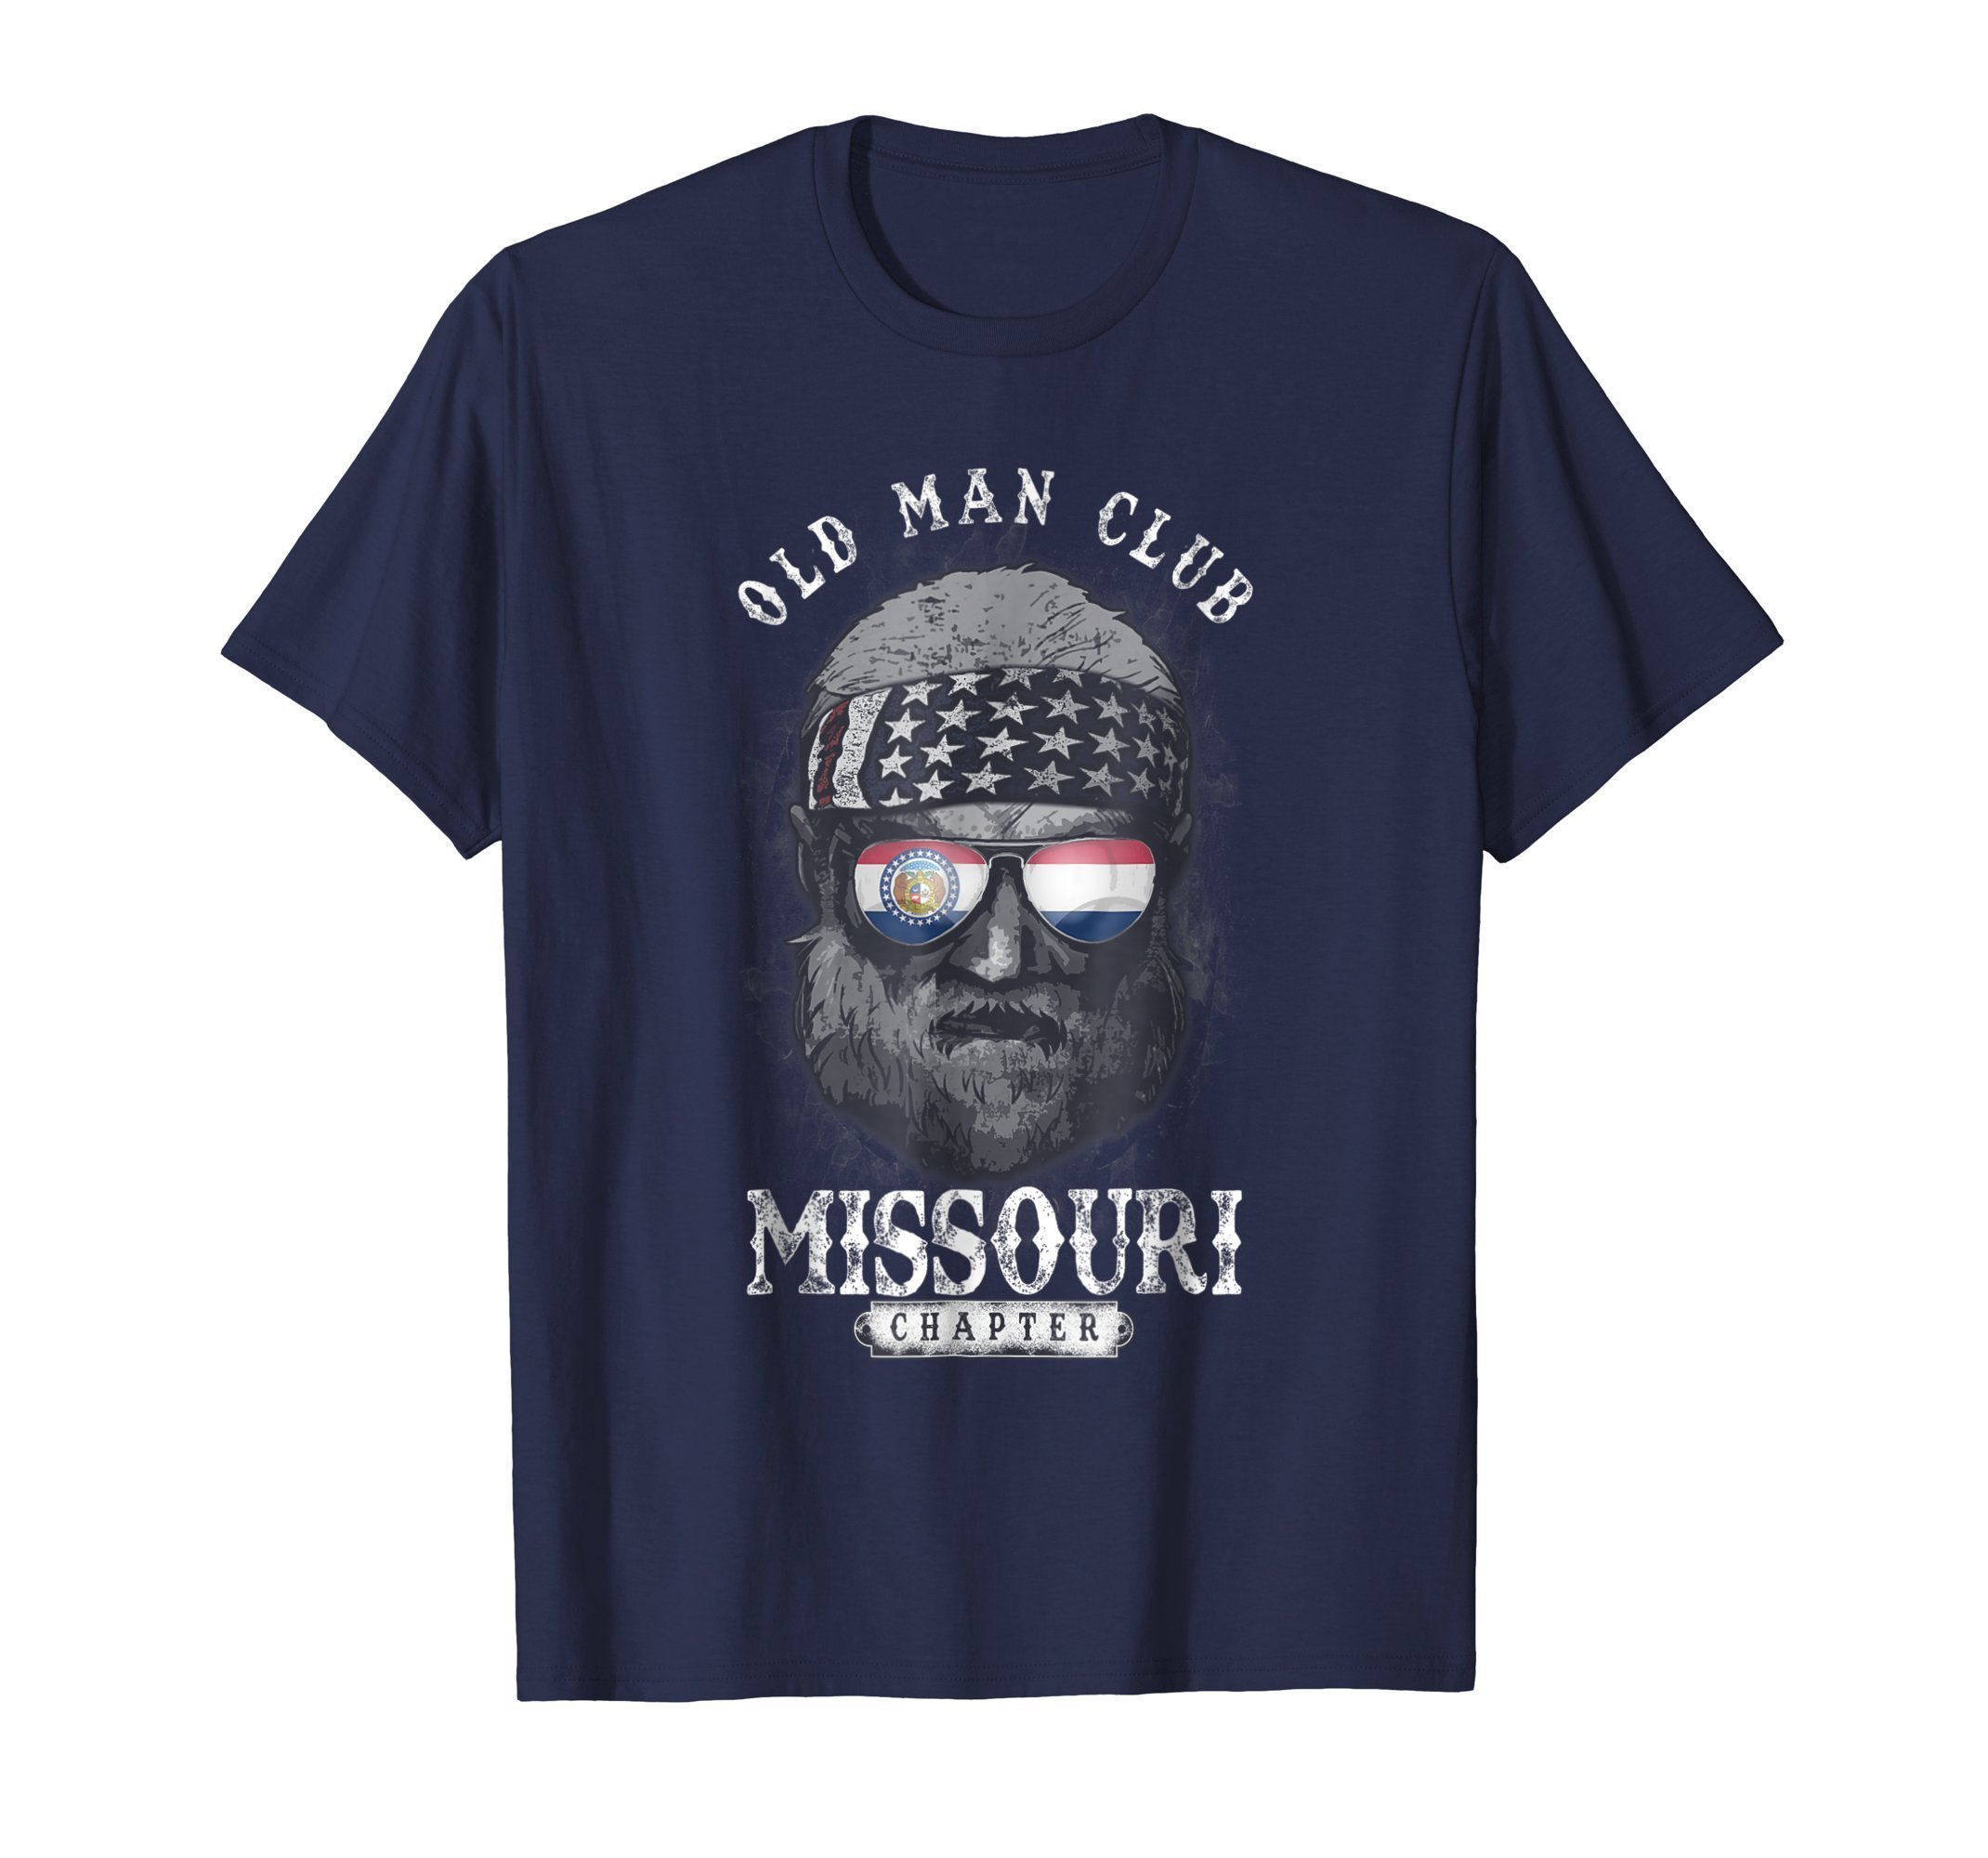 Top Selling Great S Old Man Club Missouri Chapter Shirts